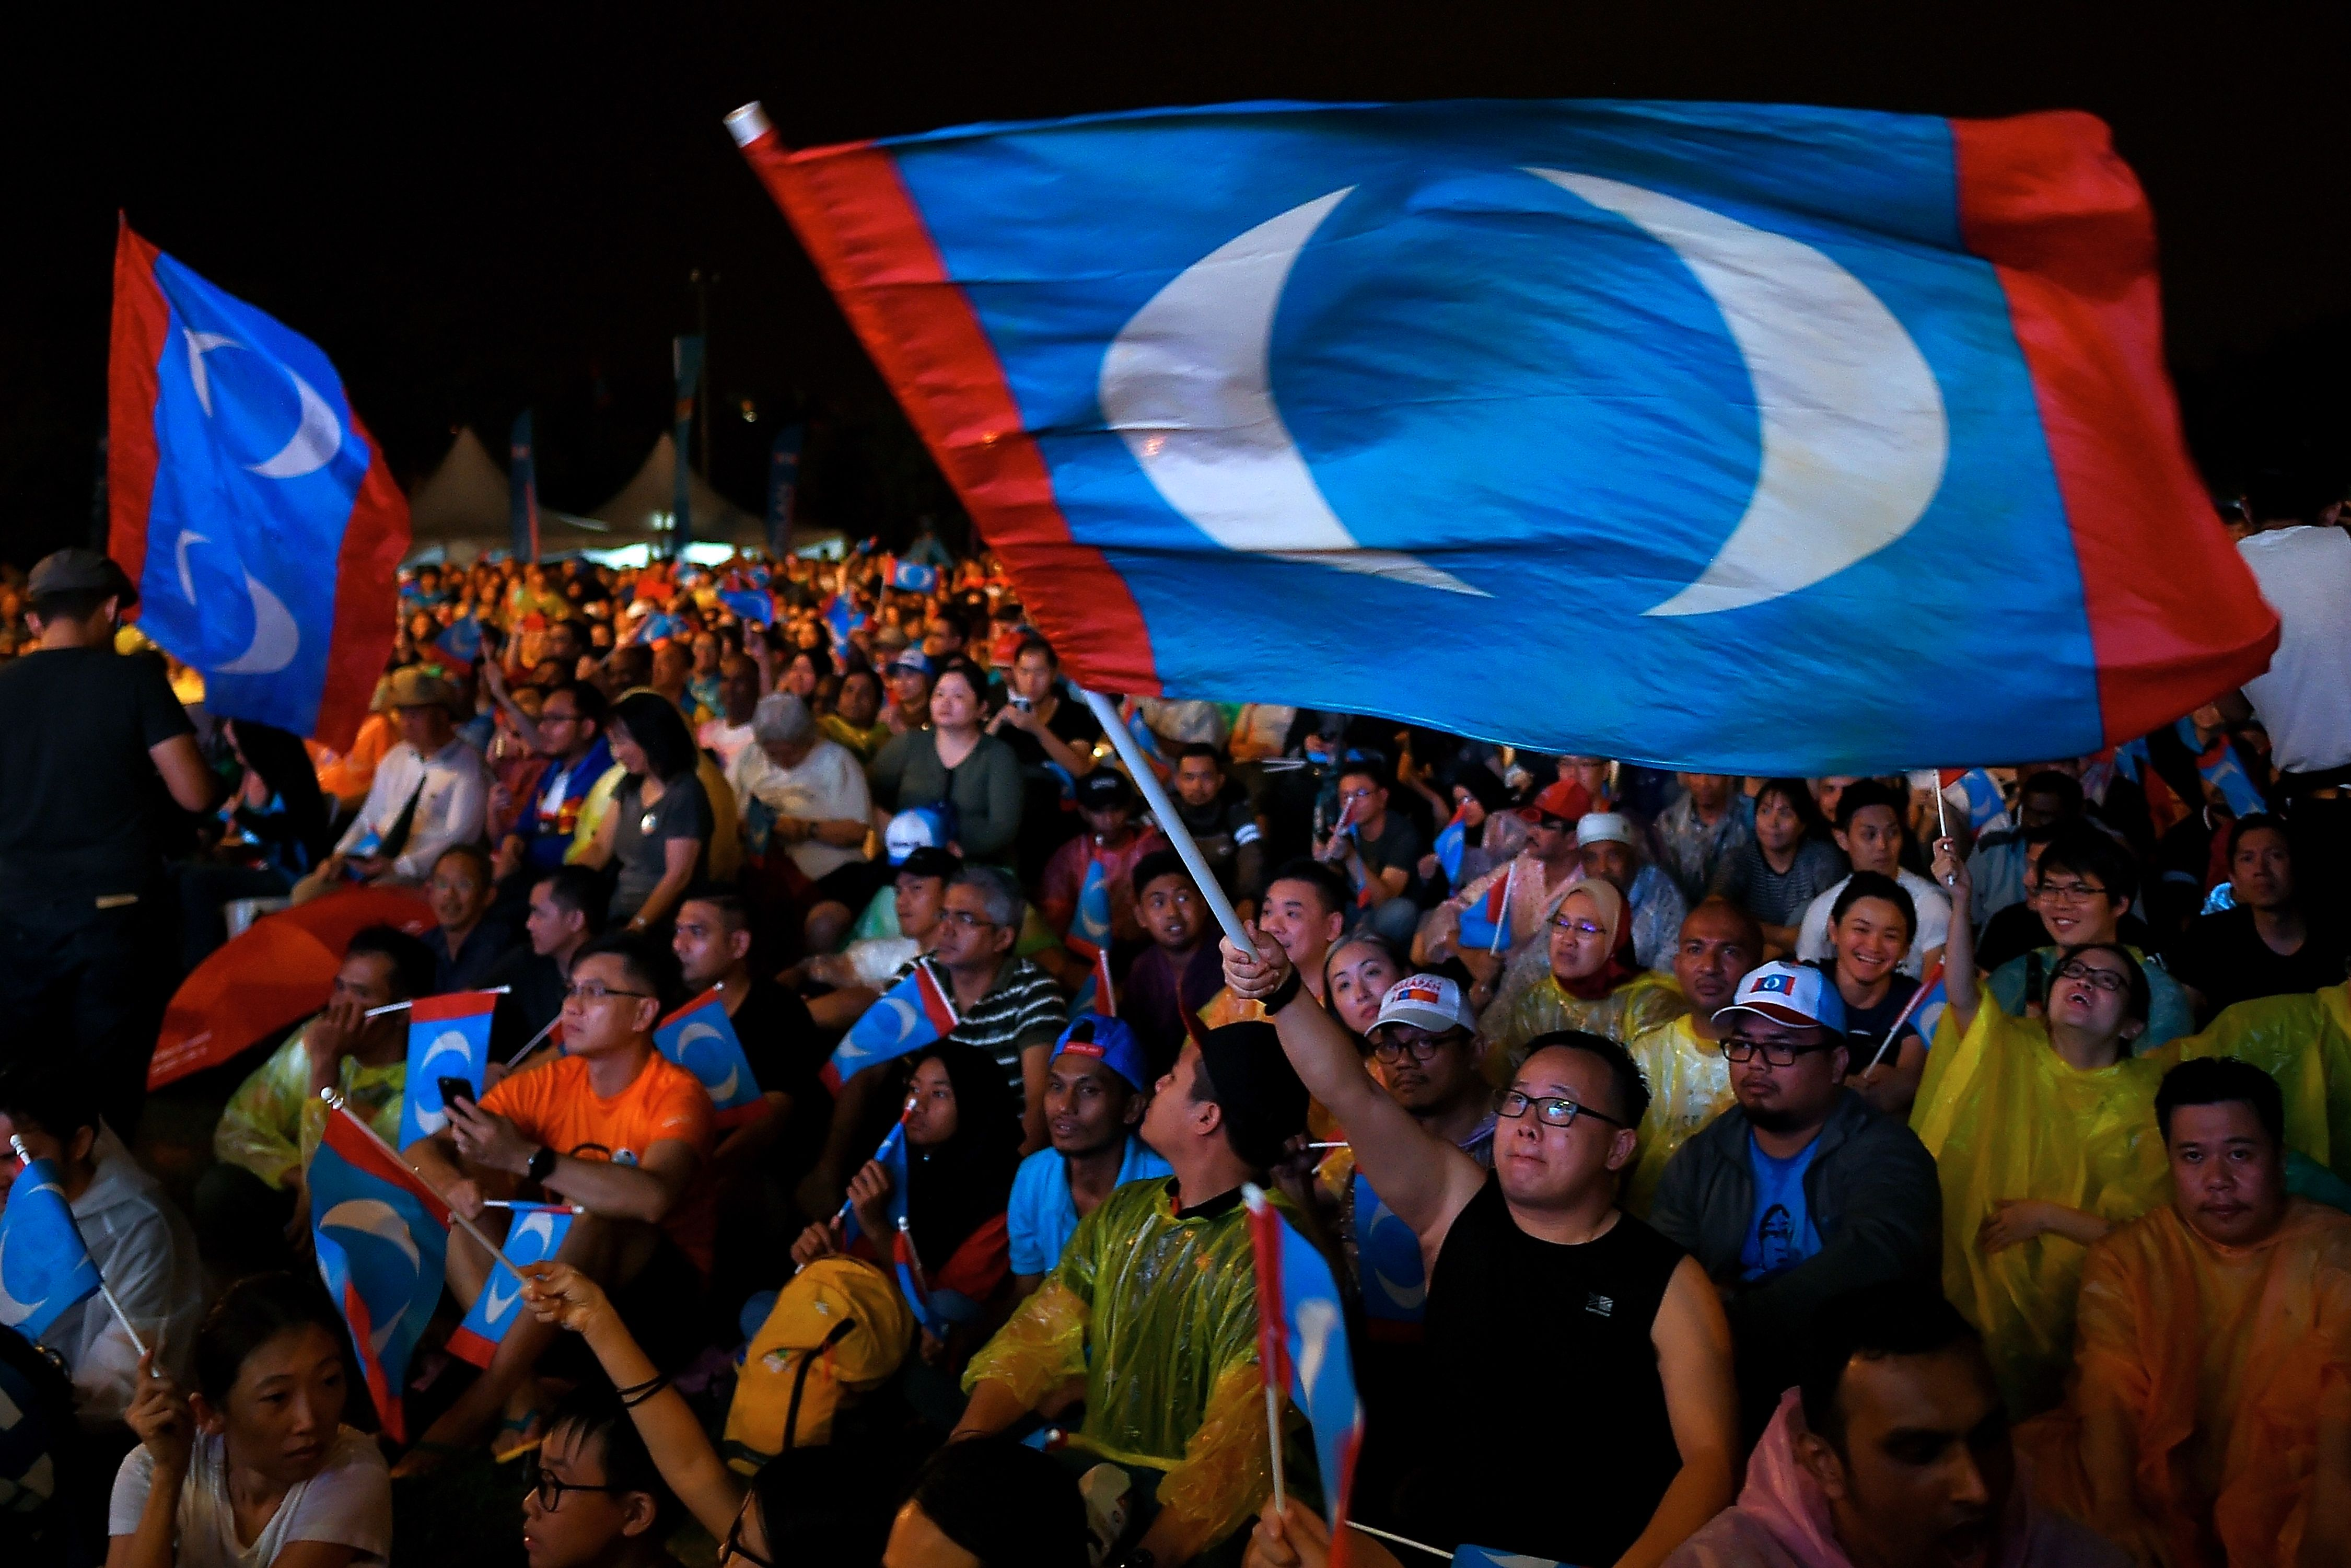 Supporters of former Malaysian prime minister and opposition party Pakatan Harapan's candidate Mahathir Mohamad attend a campaign rally ahead of the upcoming general elections to be held on May 9.